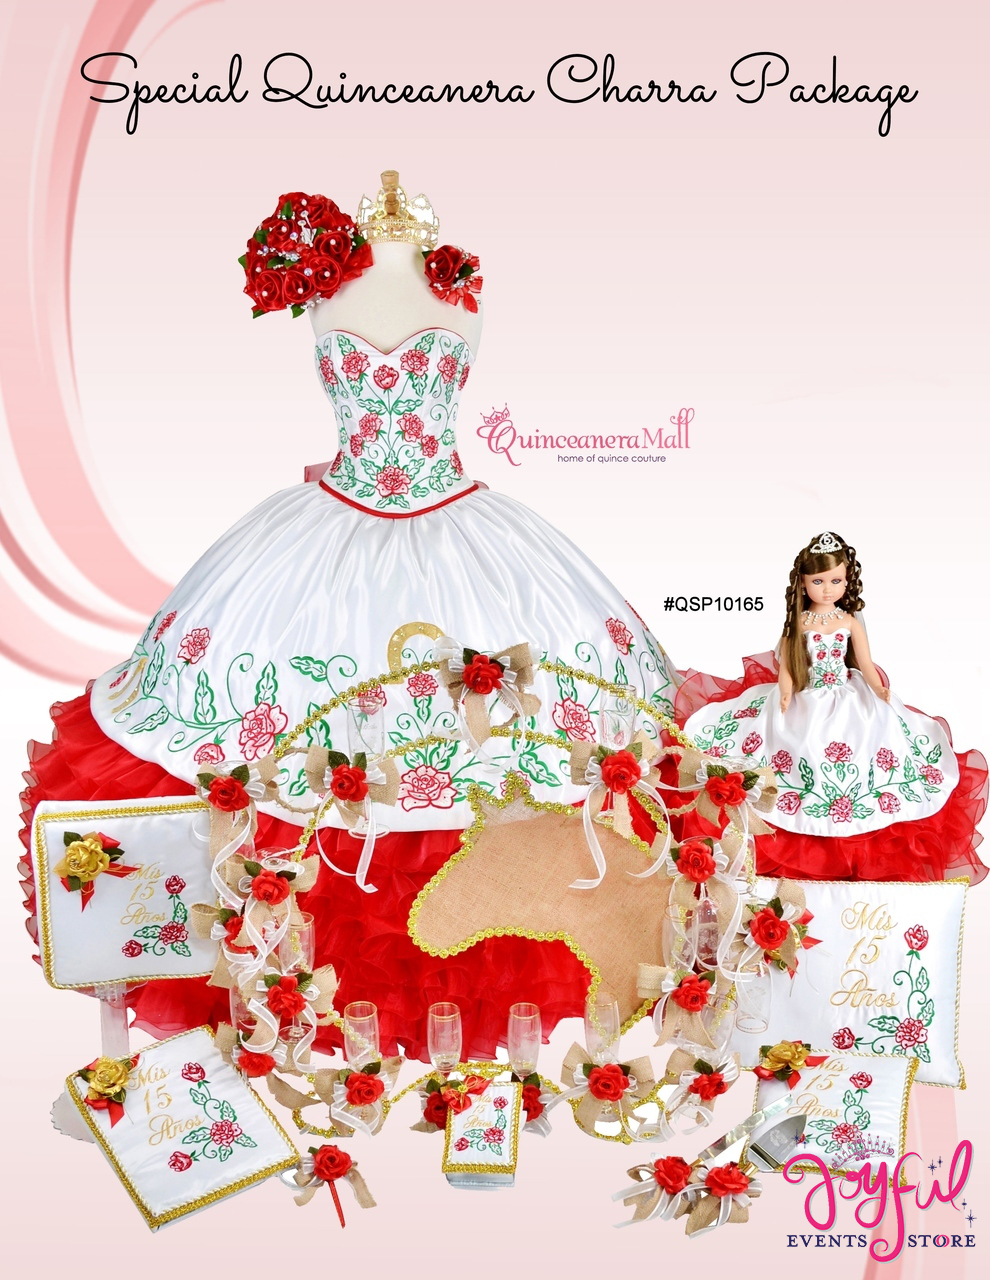 b1f2f548065 Charra Dress with Red Roses  10165 - Joyful Events Store